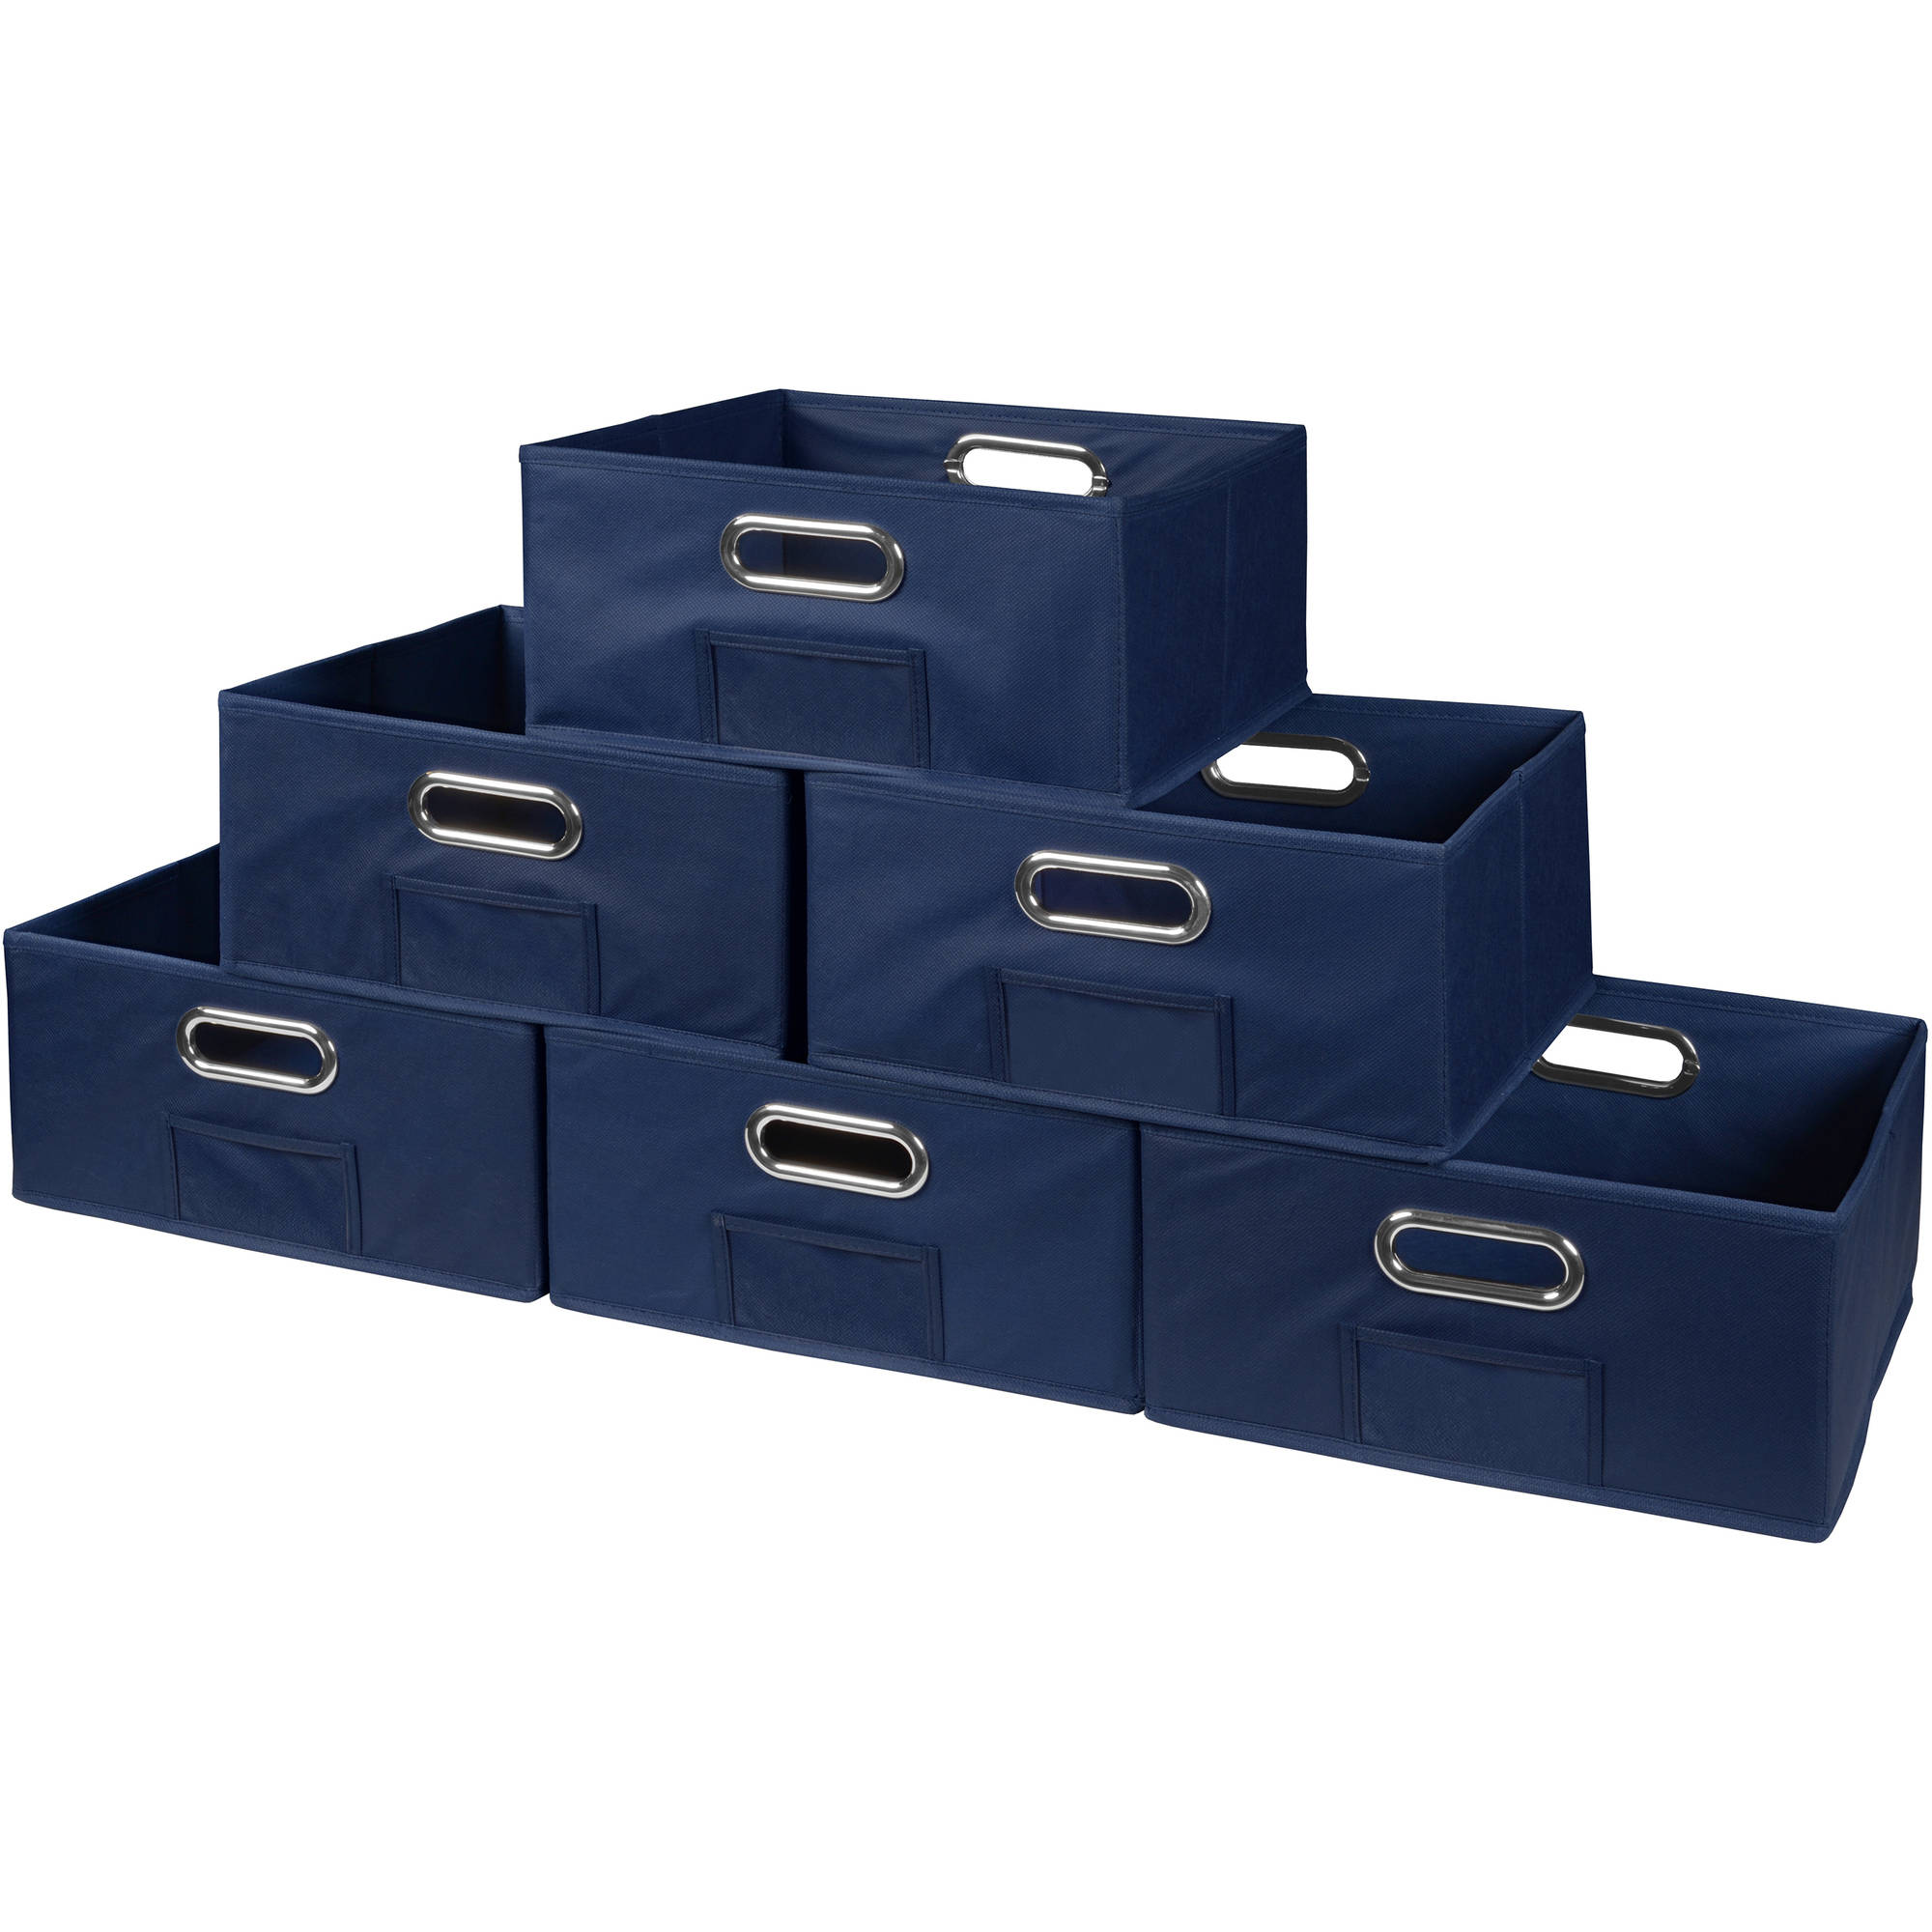 Niche Cubo Set of 6 Half-Size Foldable Fabric Storage Bins- Blue